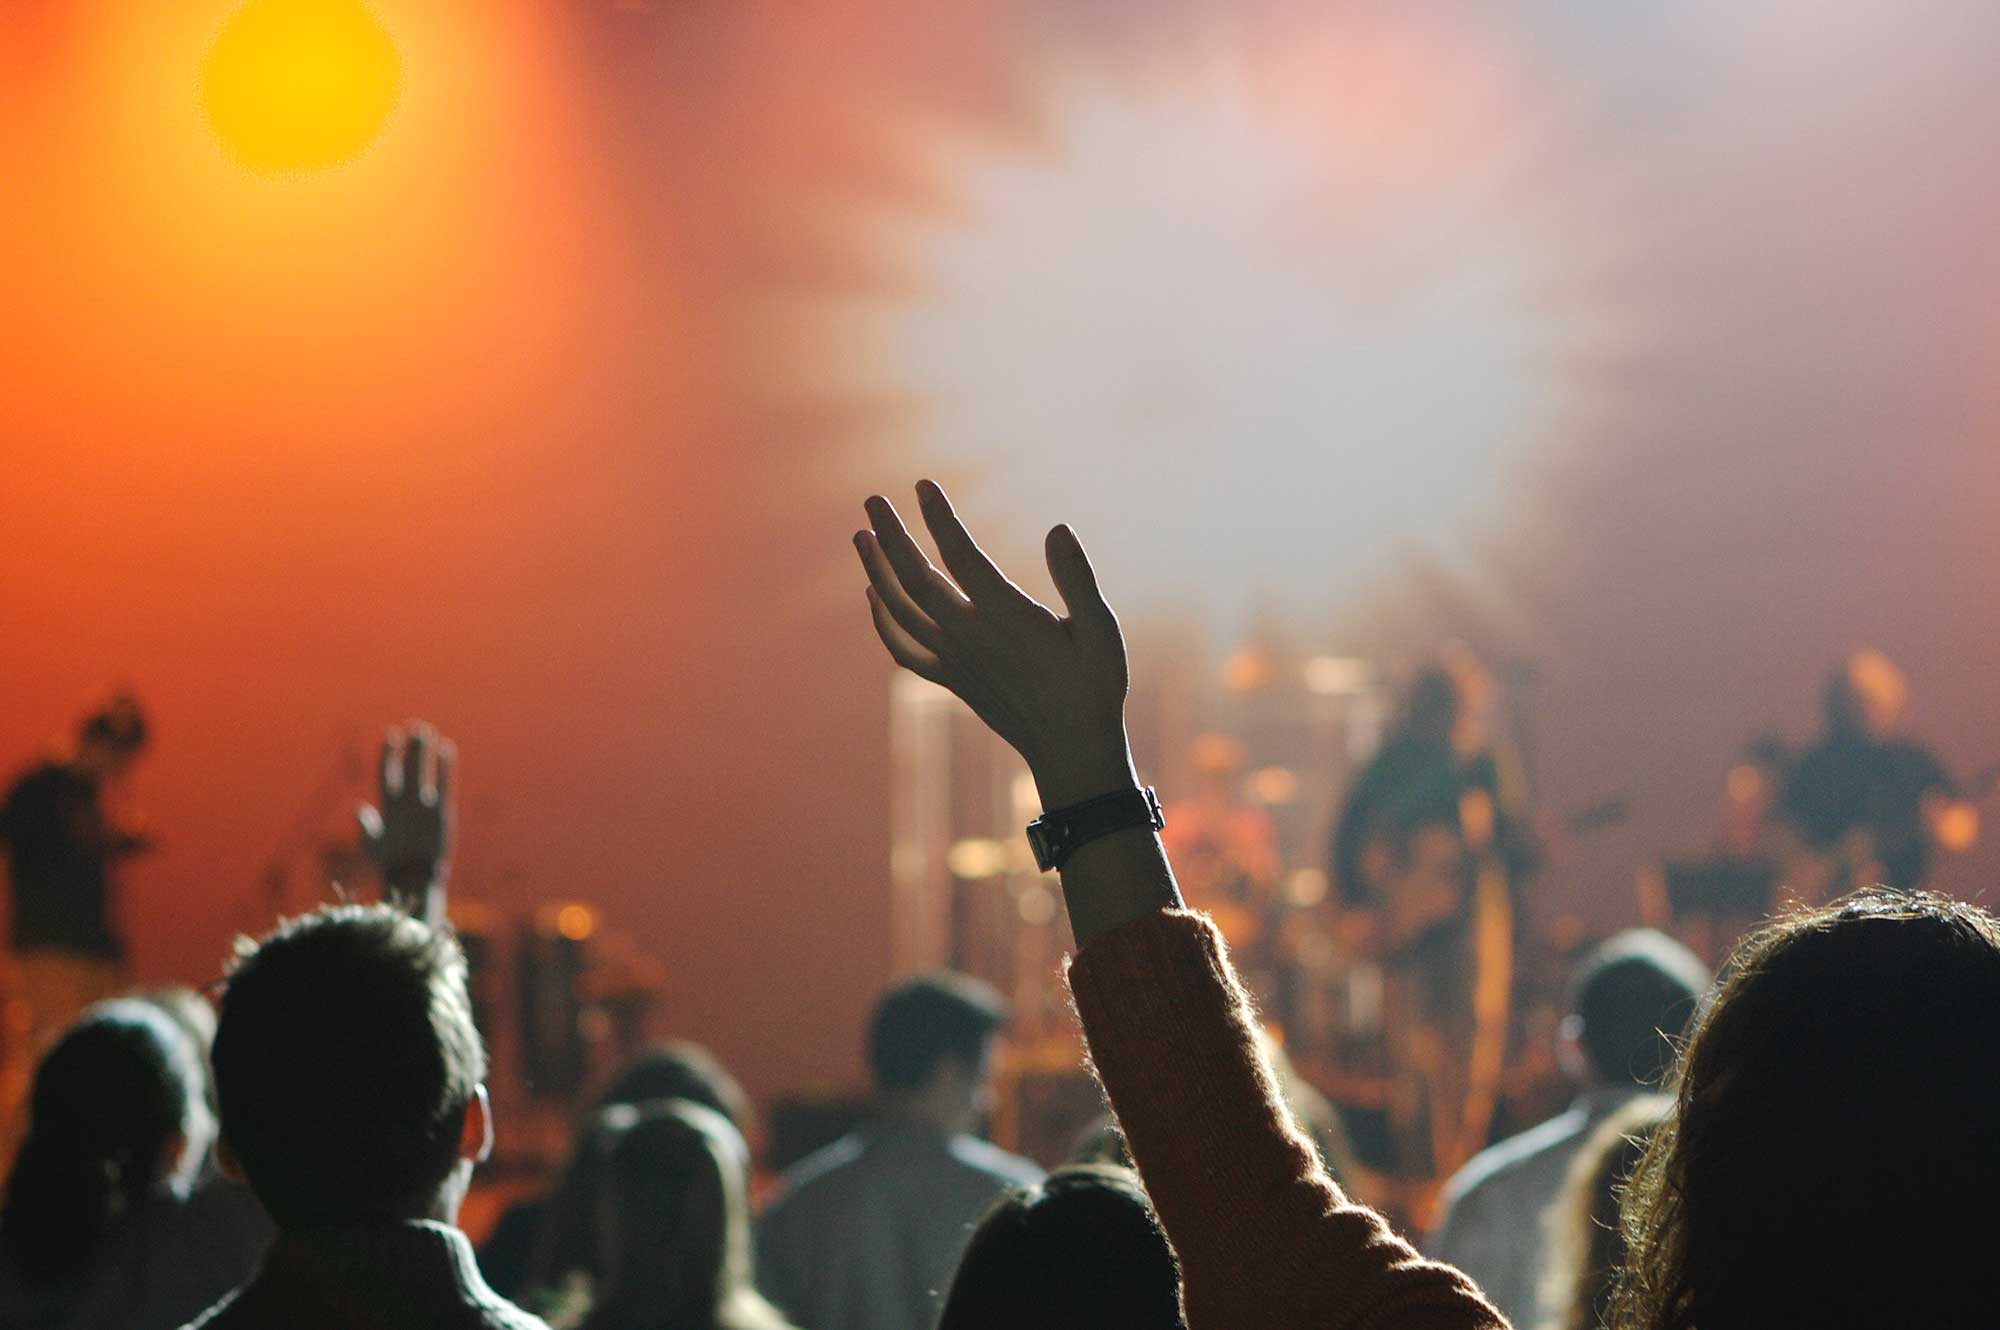 A photo of people with hands raised at a concert